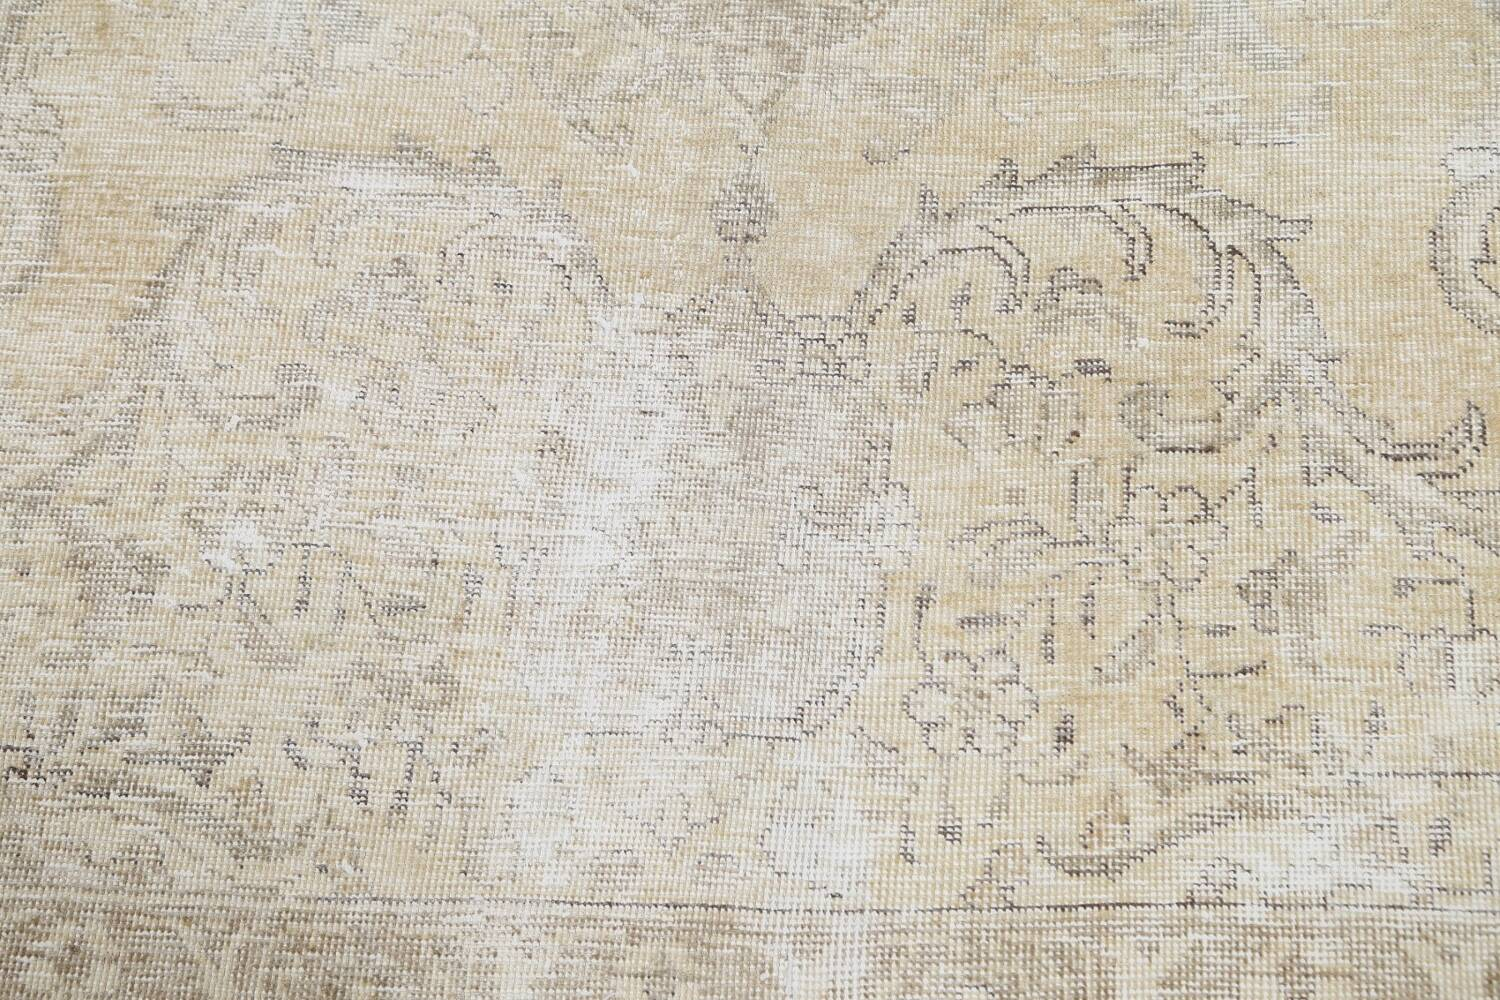 Muted Distressed Tabriz Persian Area Rug 8x12 image 10